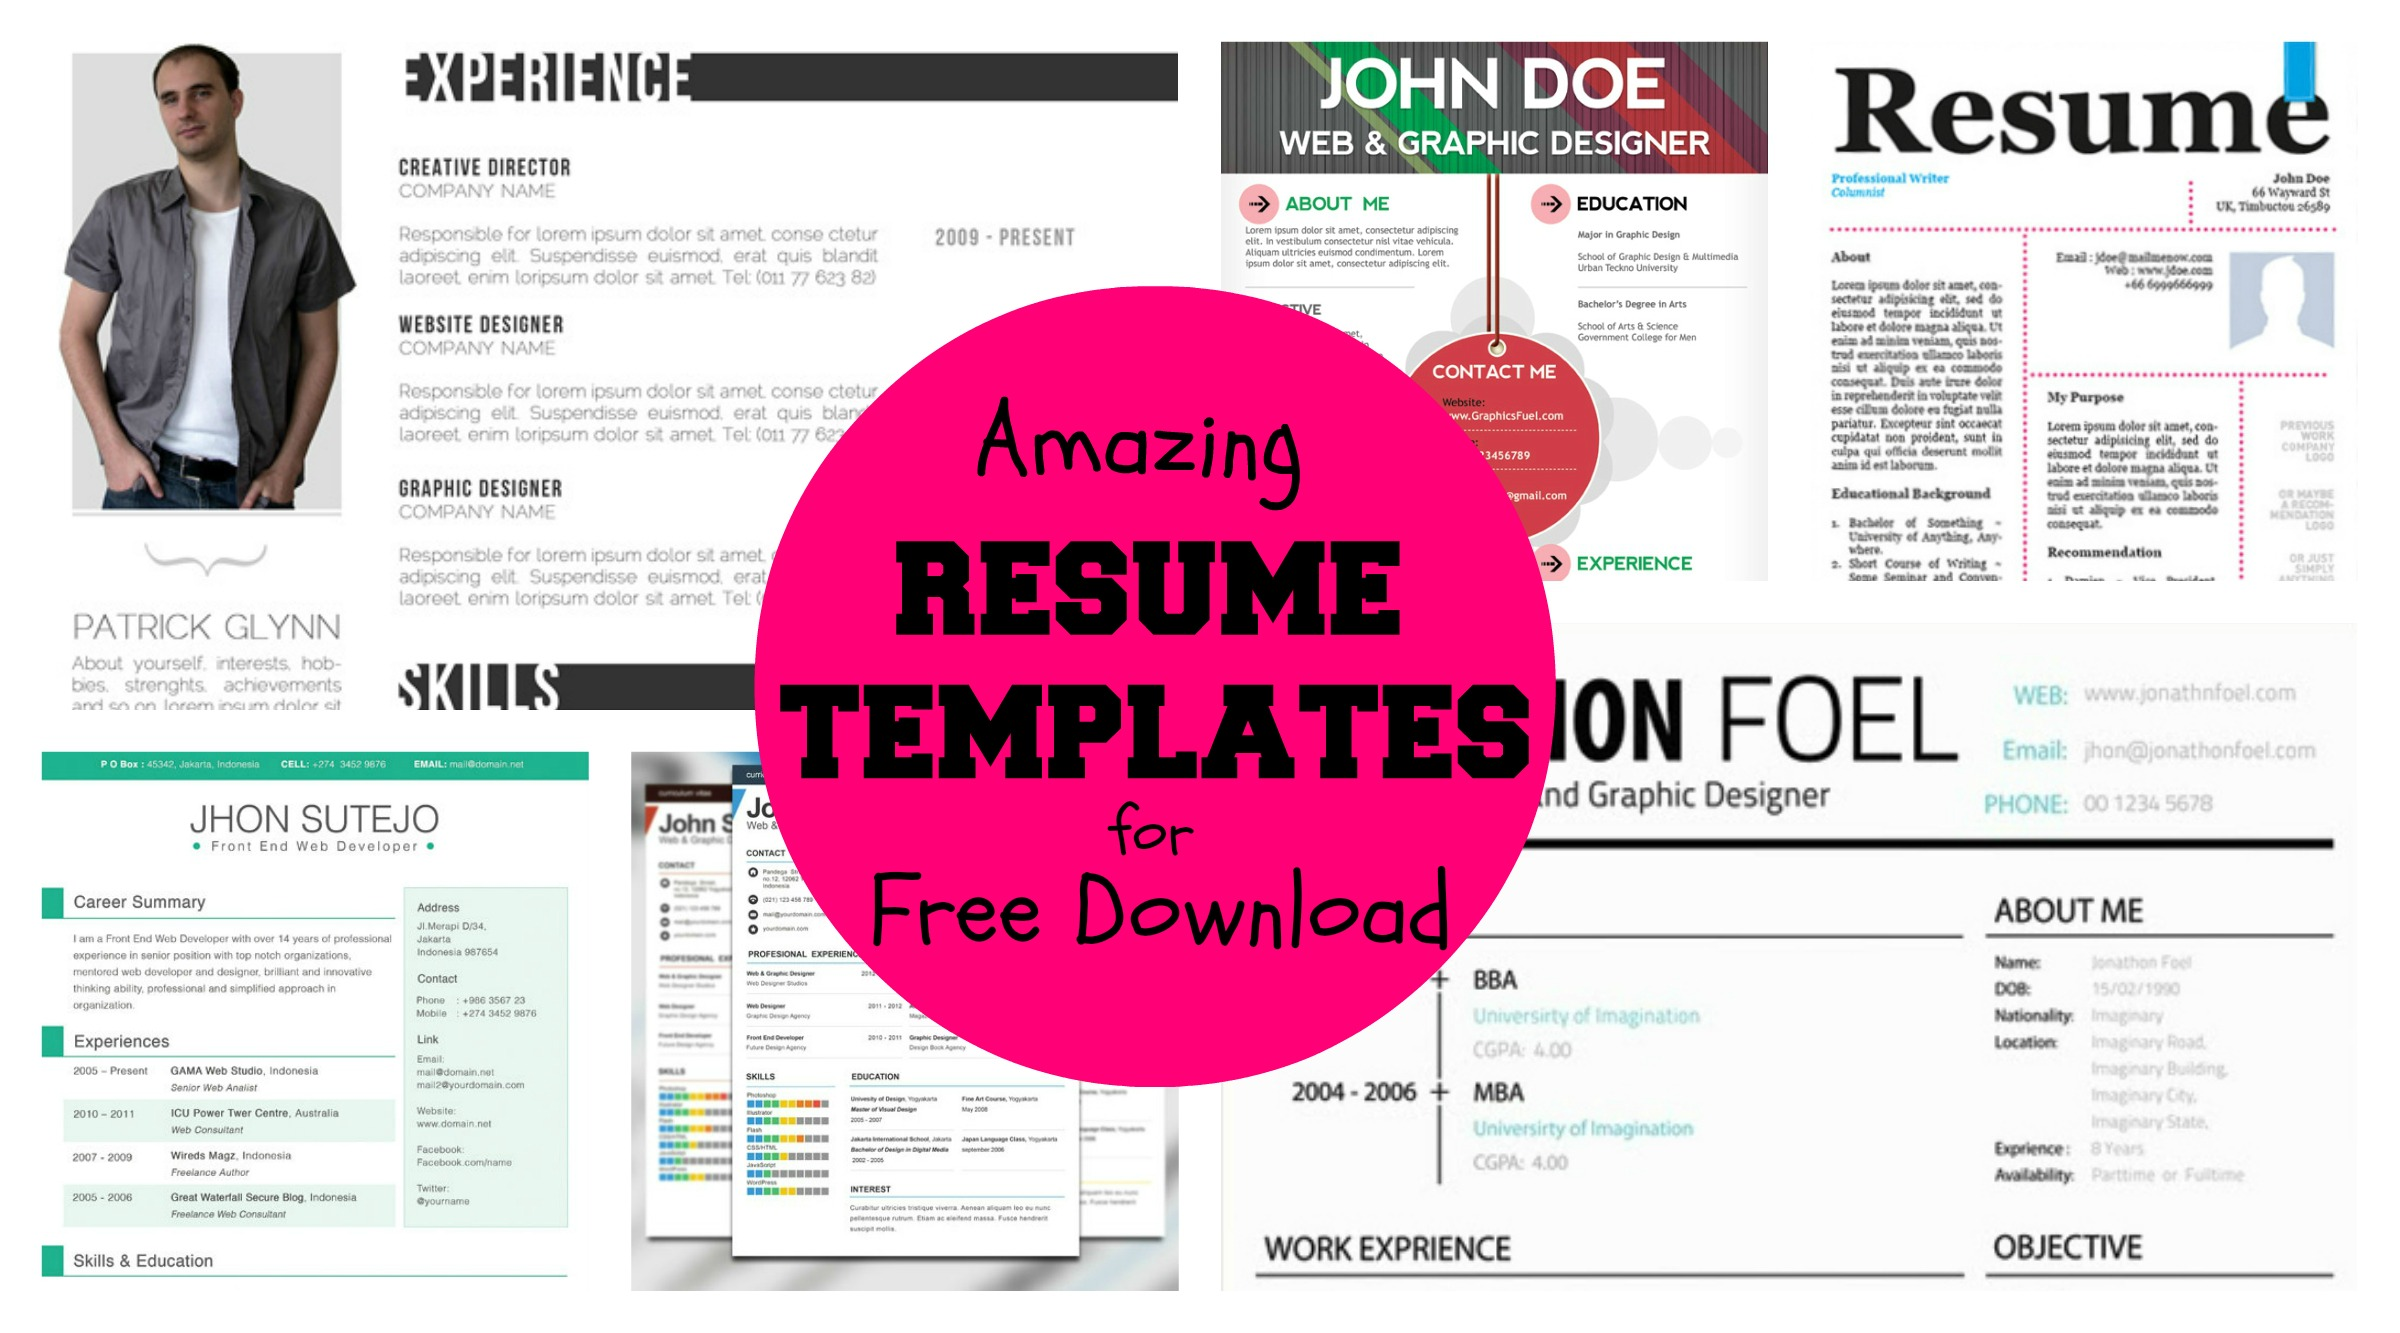 online resume update resume samples writing guides online resume update resumizer resume creator online write and print 20 awesome designer resume